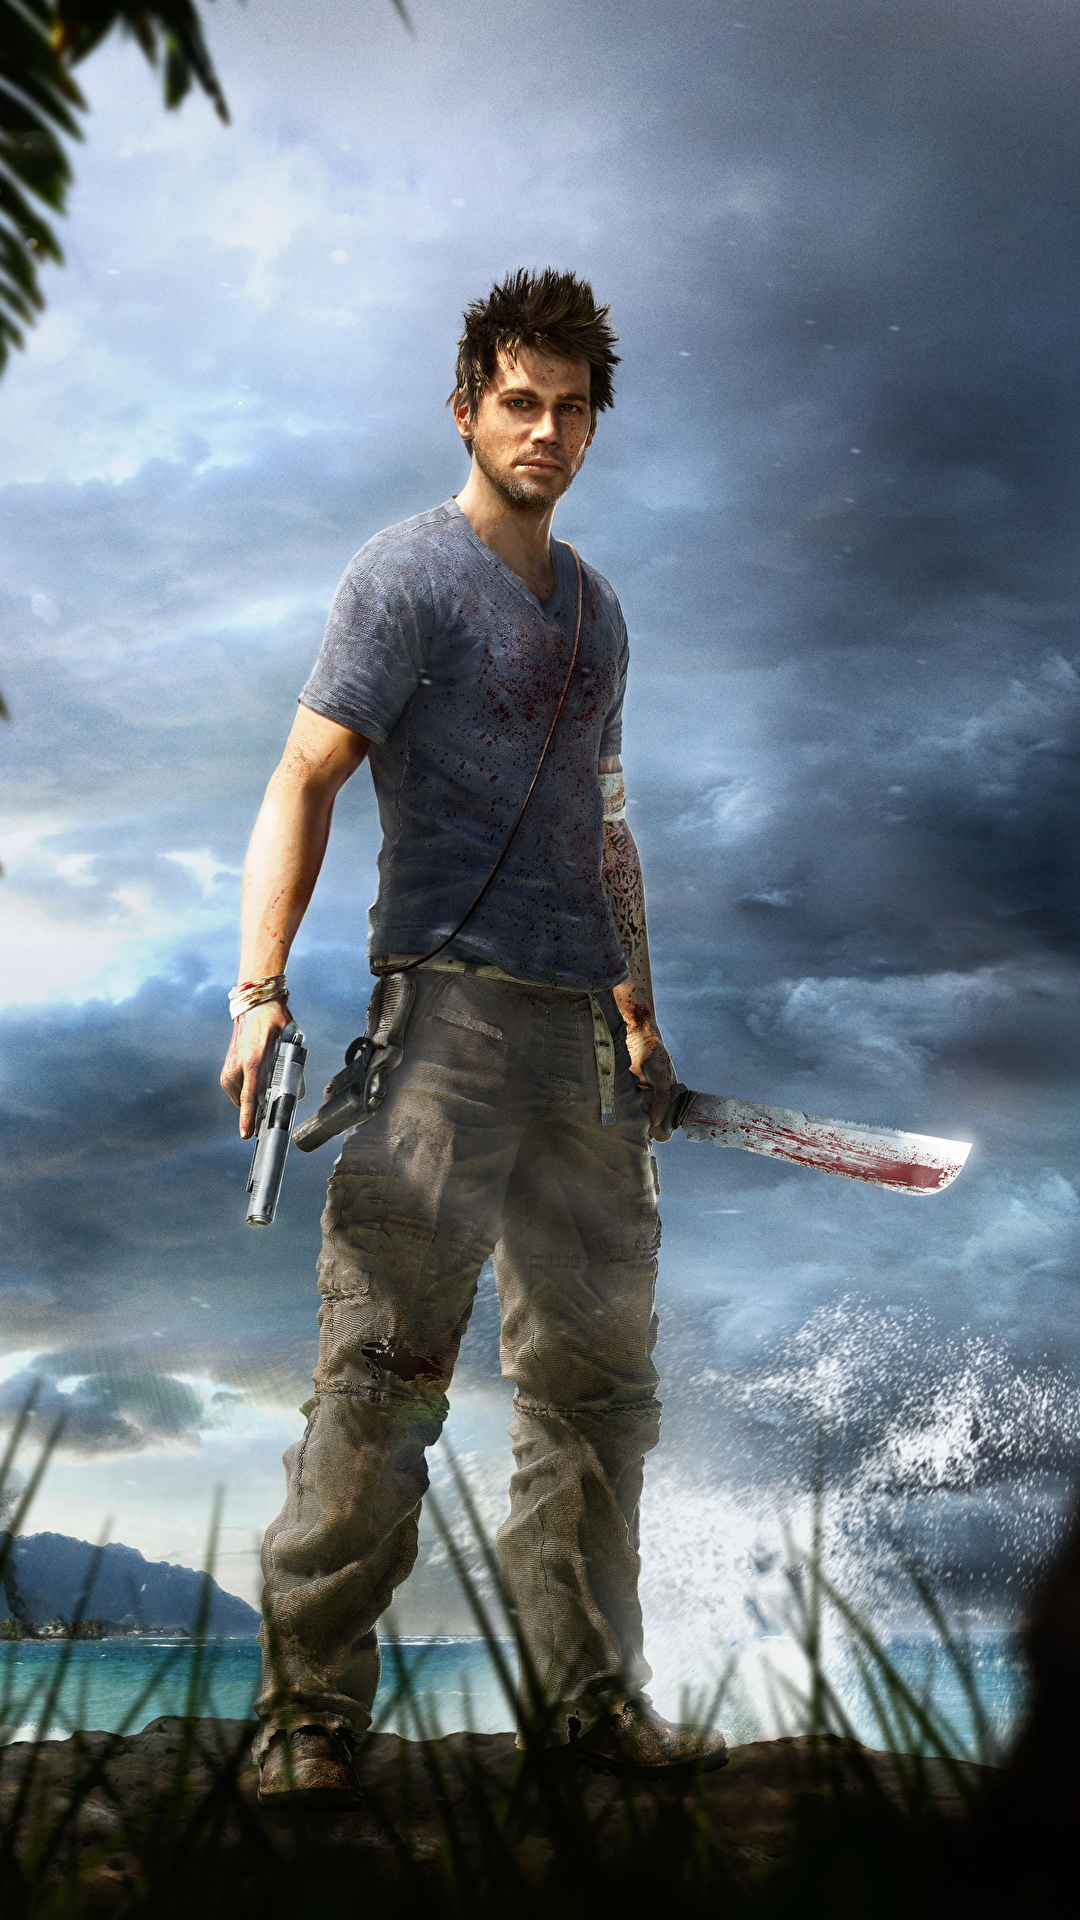 Images Far Cry 3 Pistol Guy Jason Brody Games 1080x1920